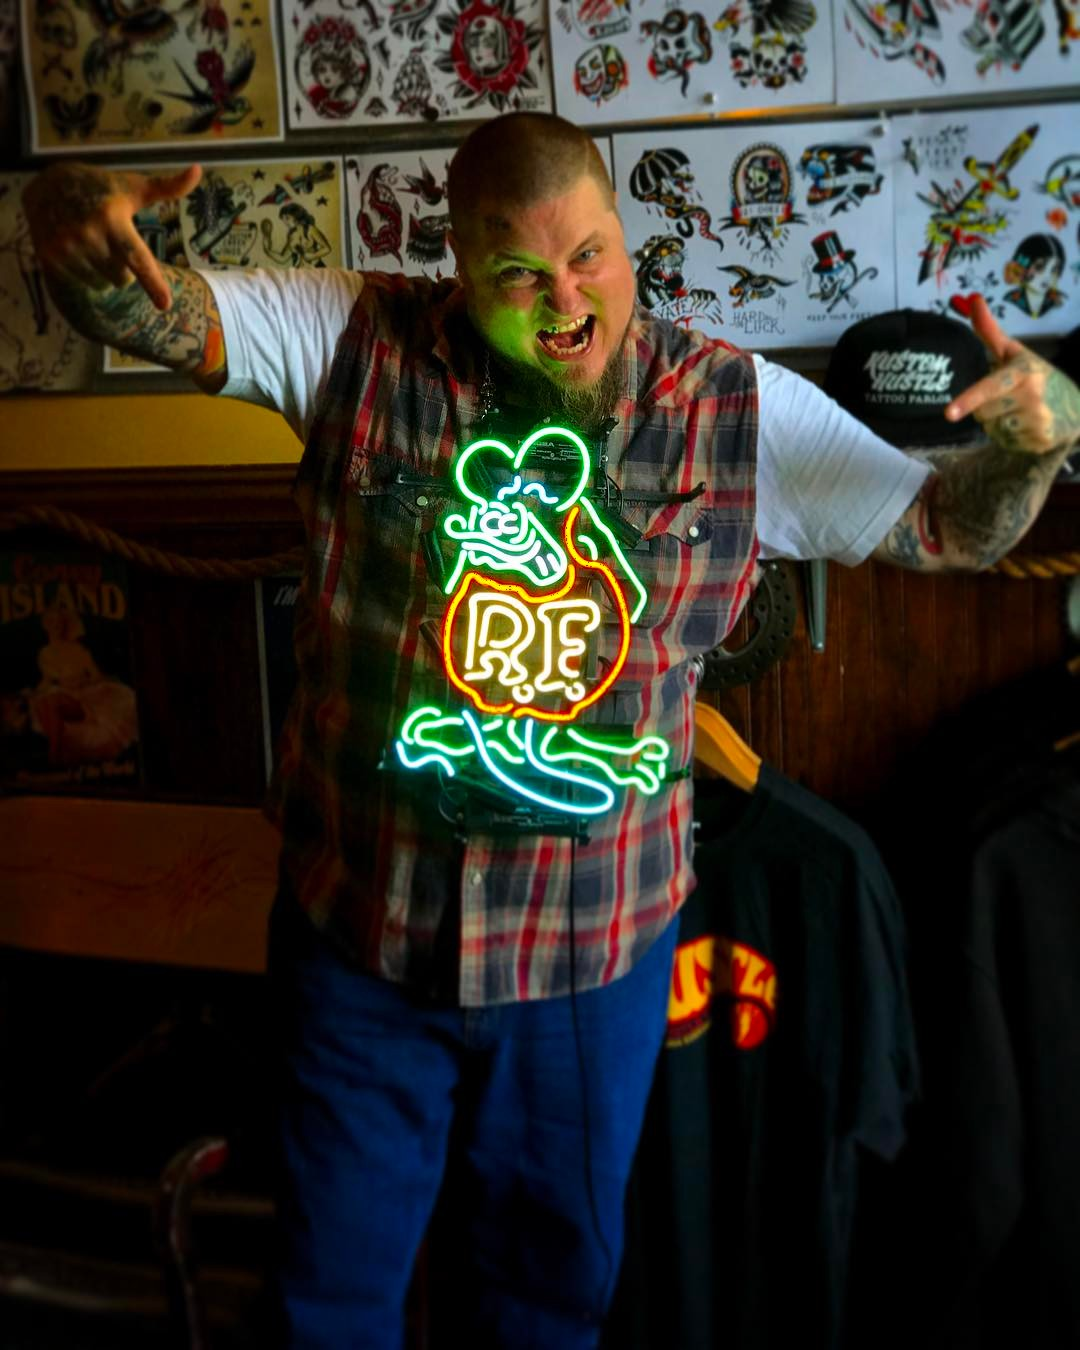 It's Marcus's birthday and we got him a neon rat fink.